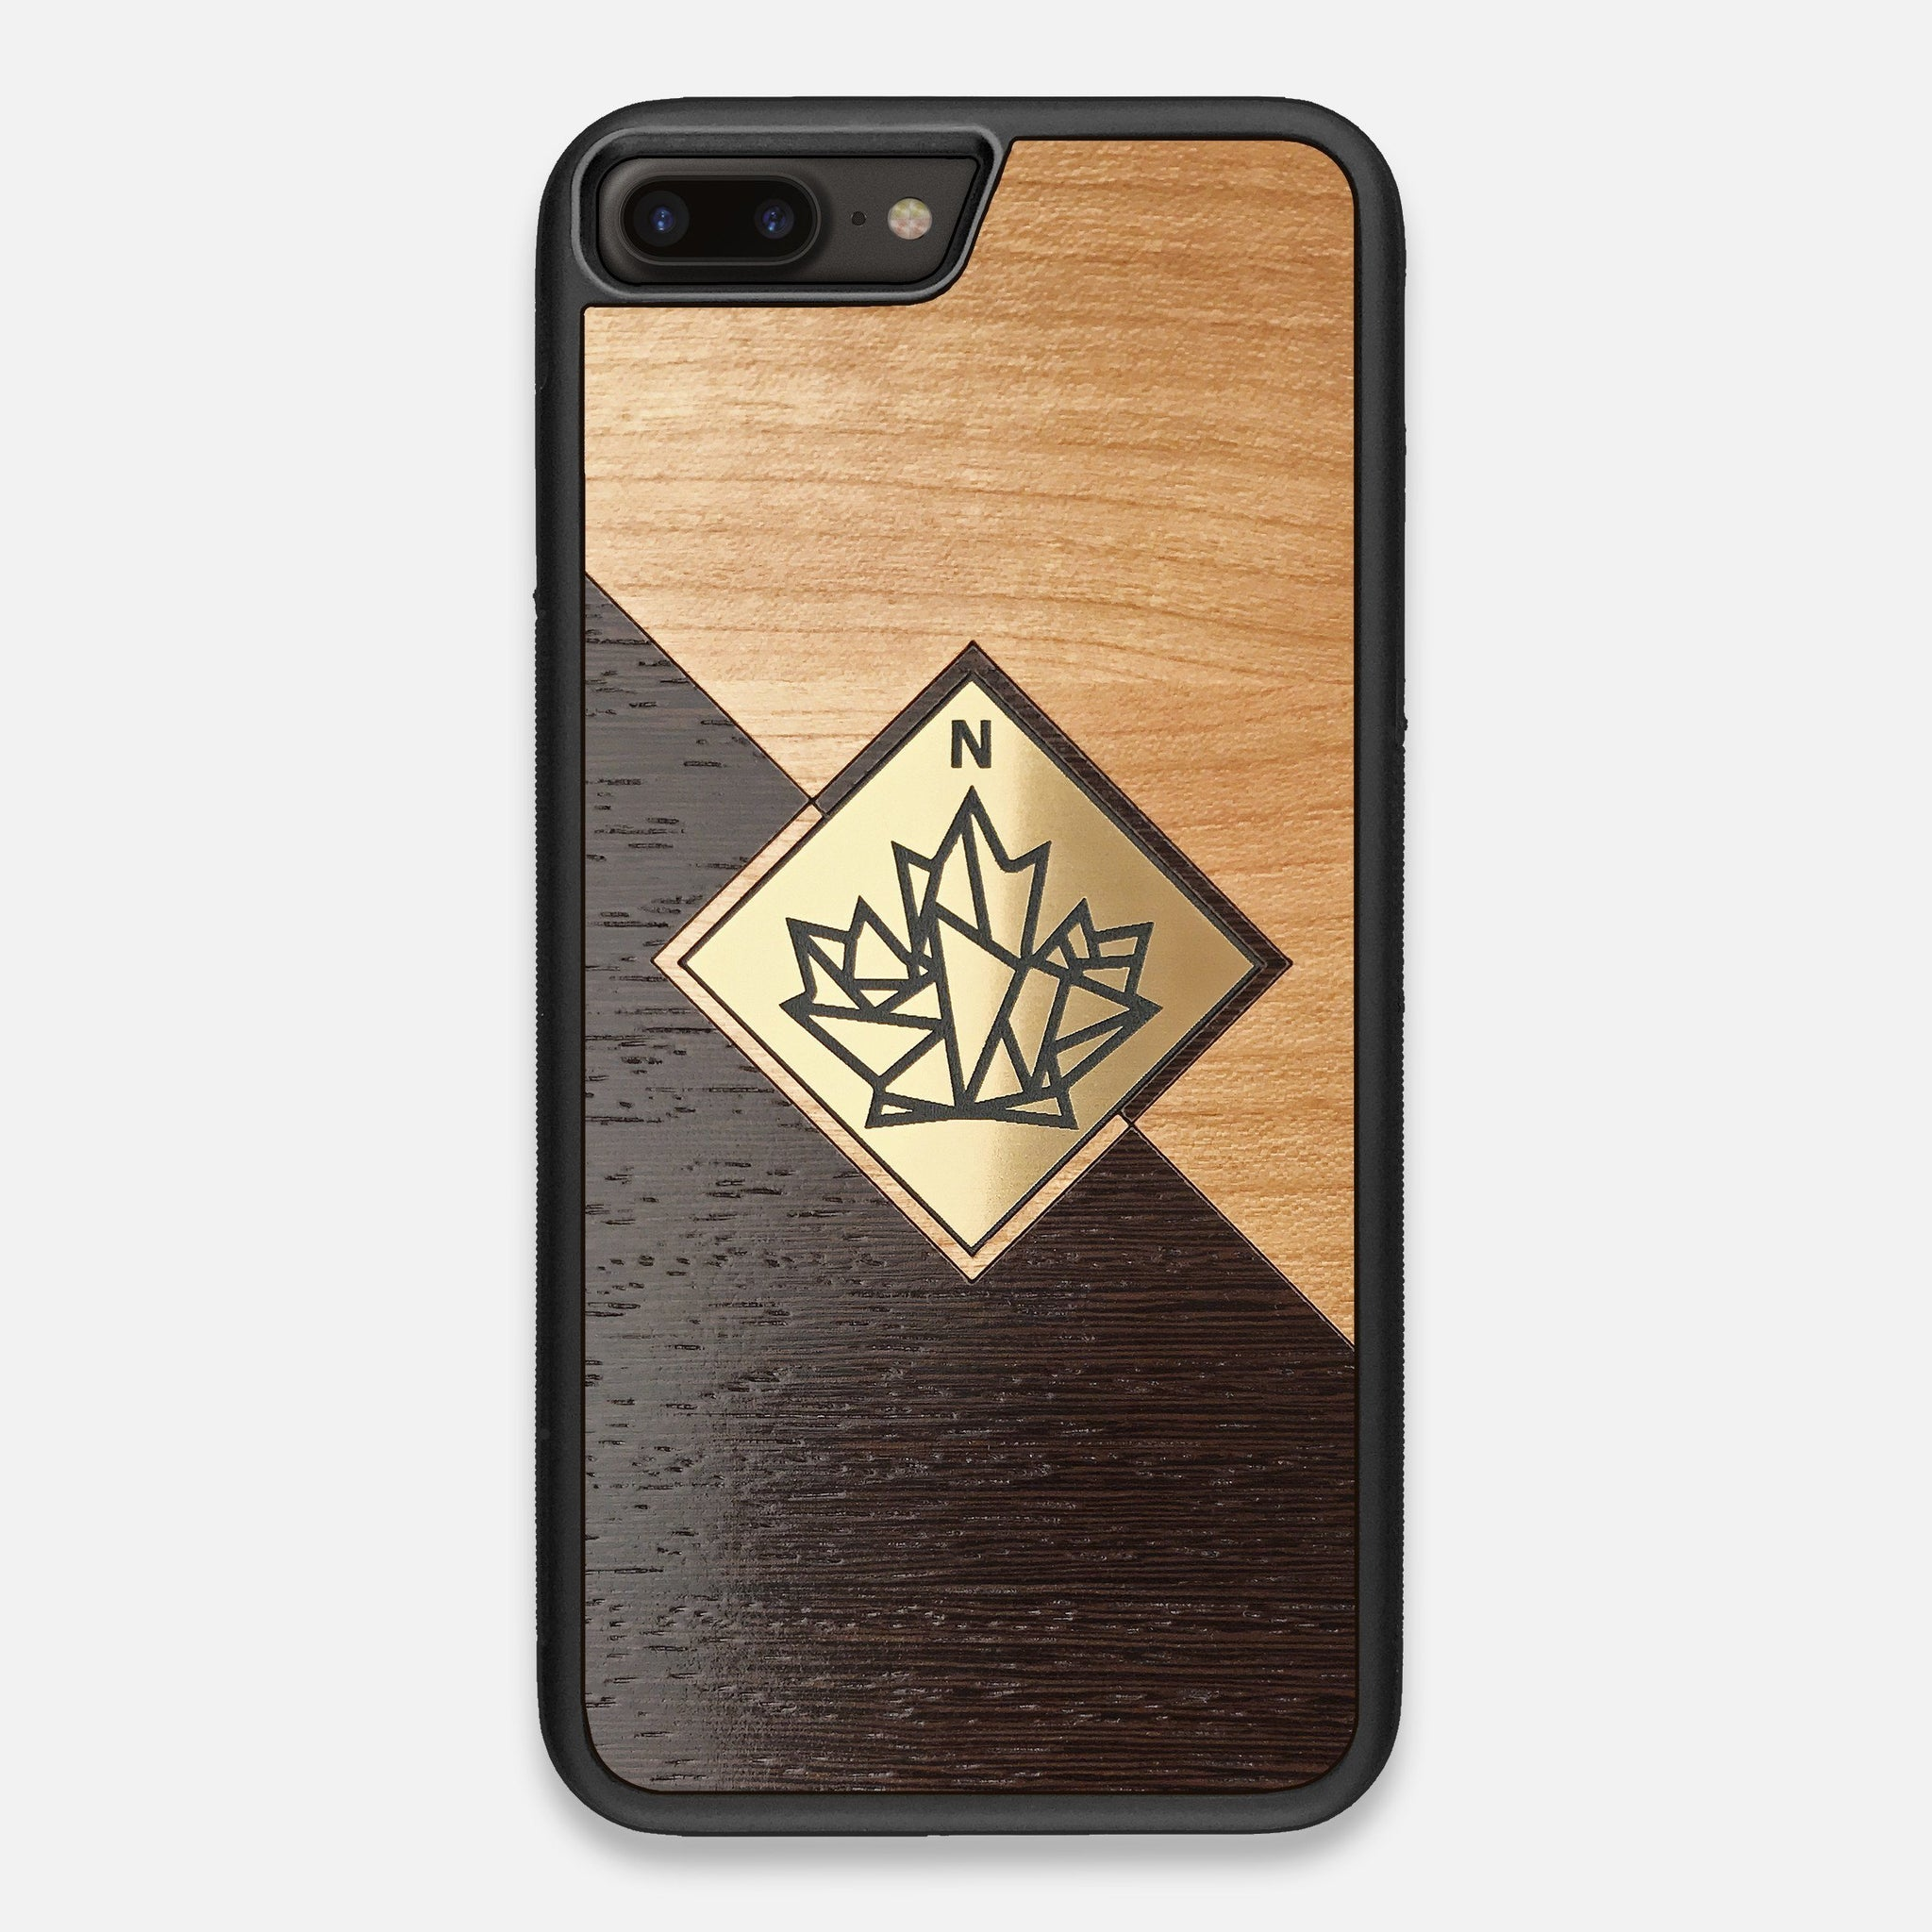 Front view of the True North by Northern Philosophy Cherry & Wenge Wood iPhone 7/8 Plus Case by Keyway Designs